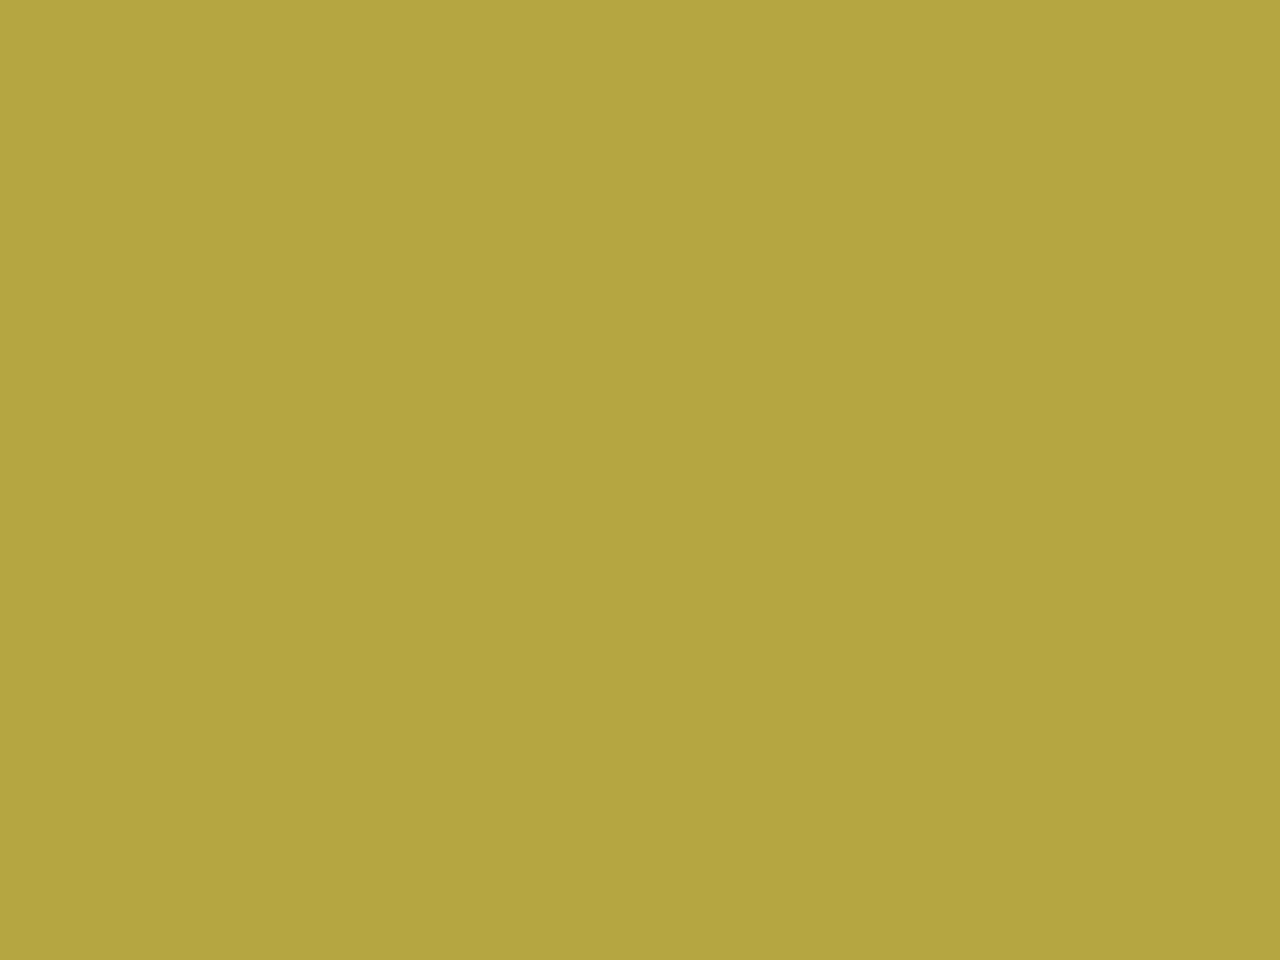 1280x960 Brass Solid Color Background